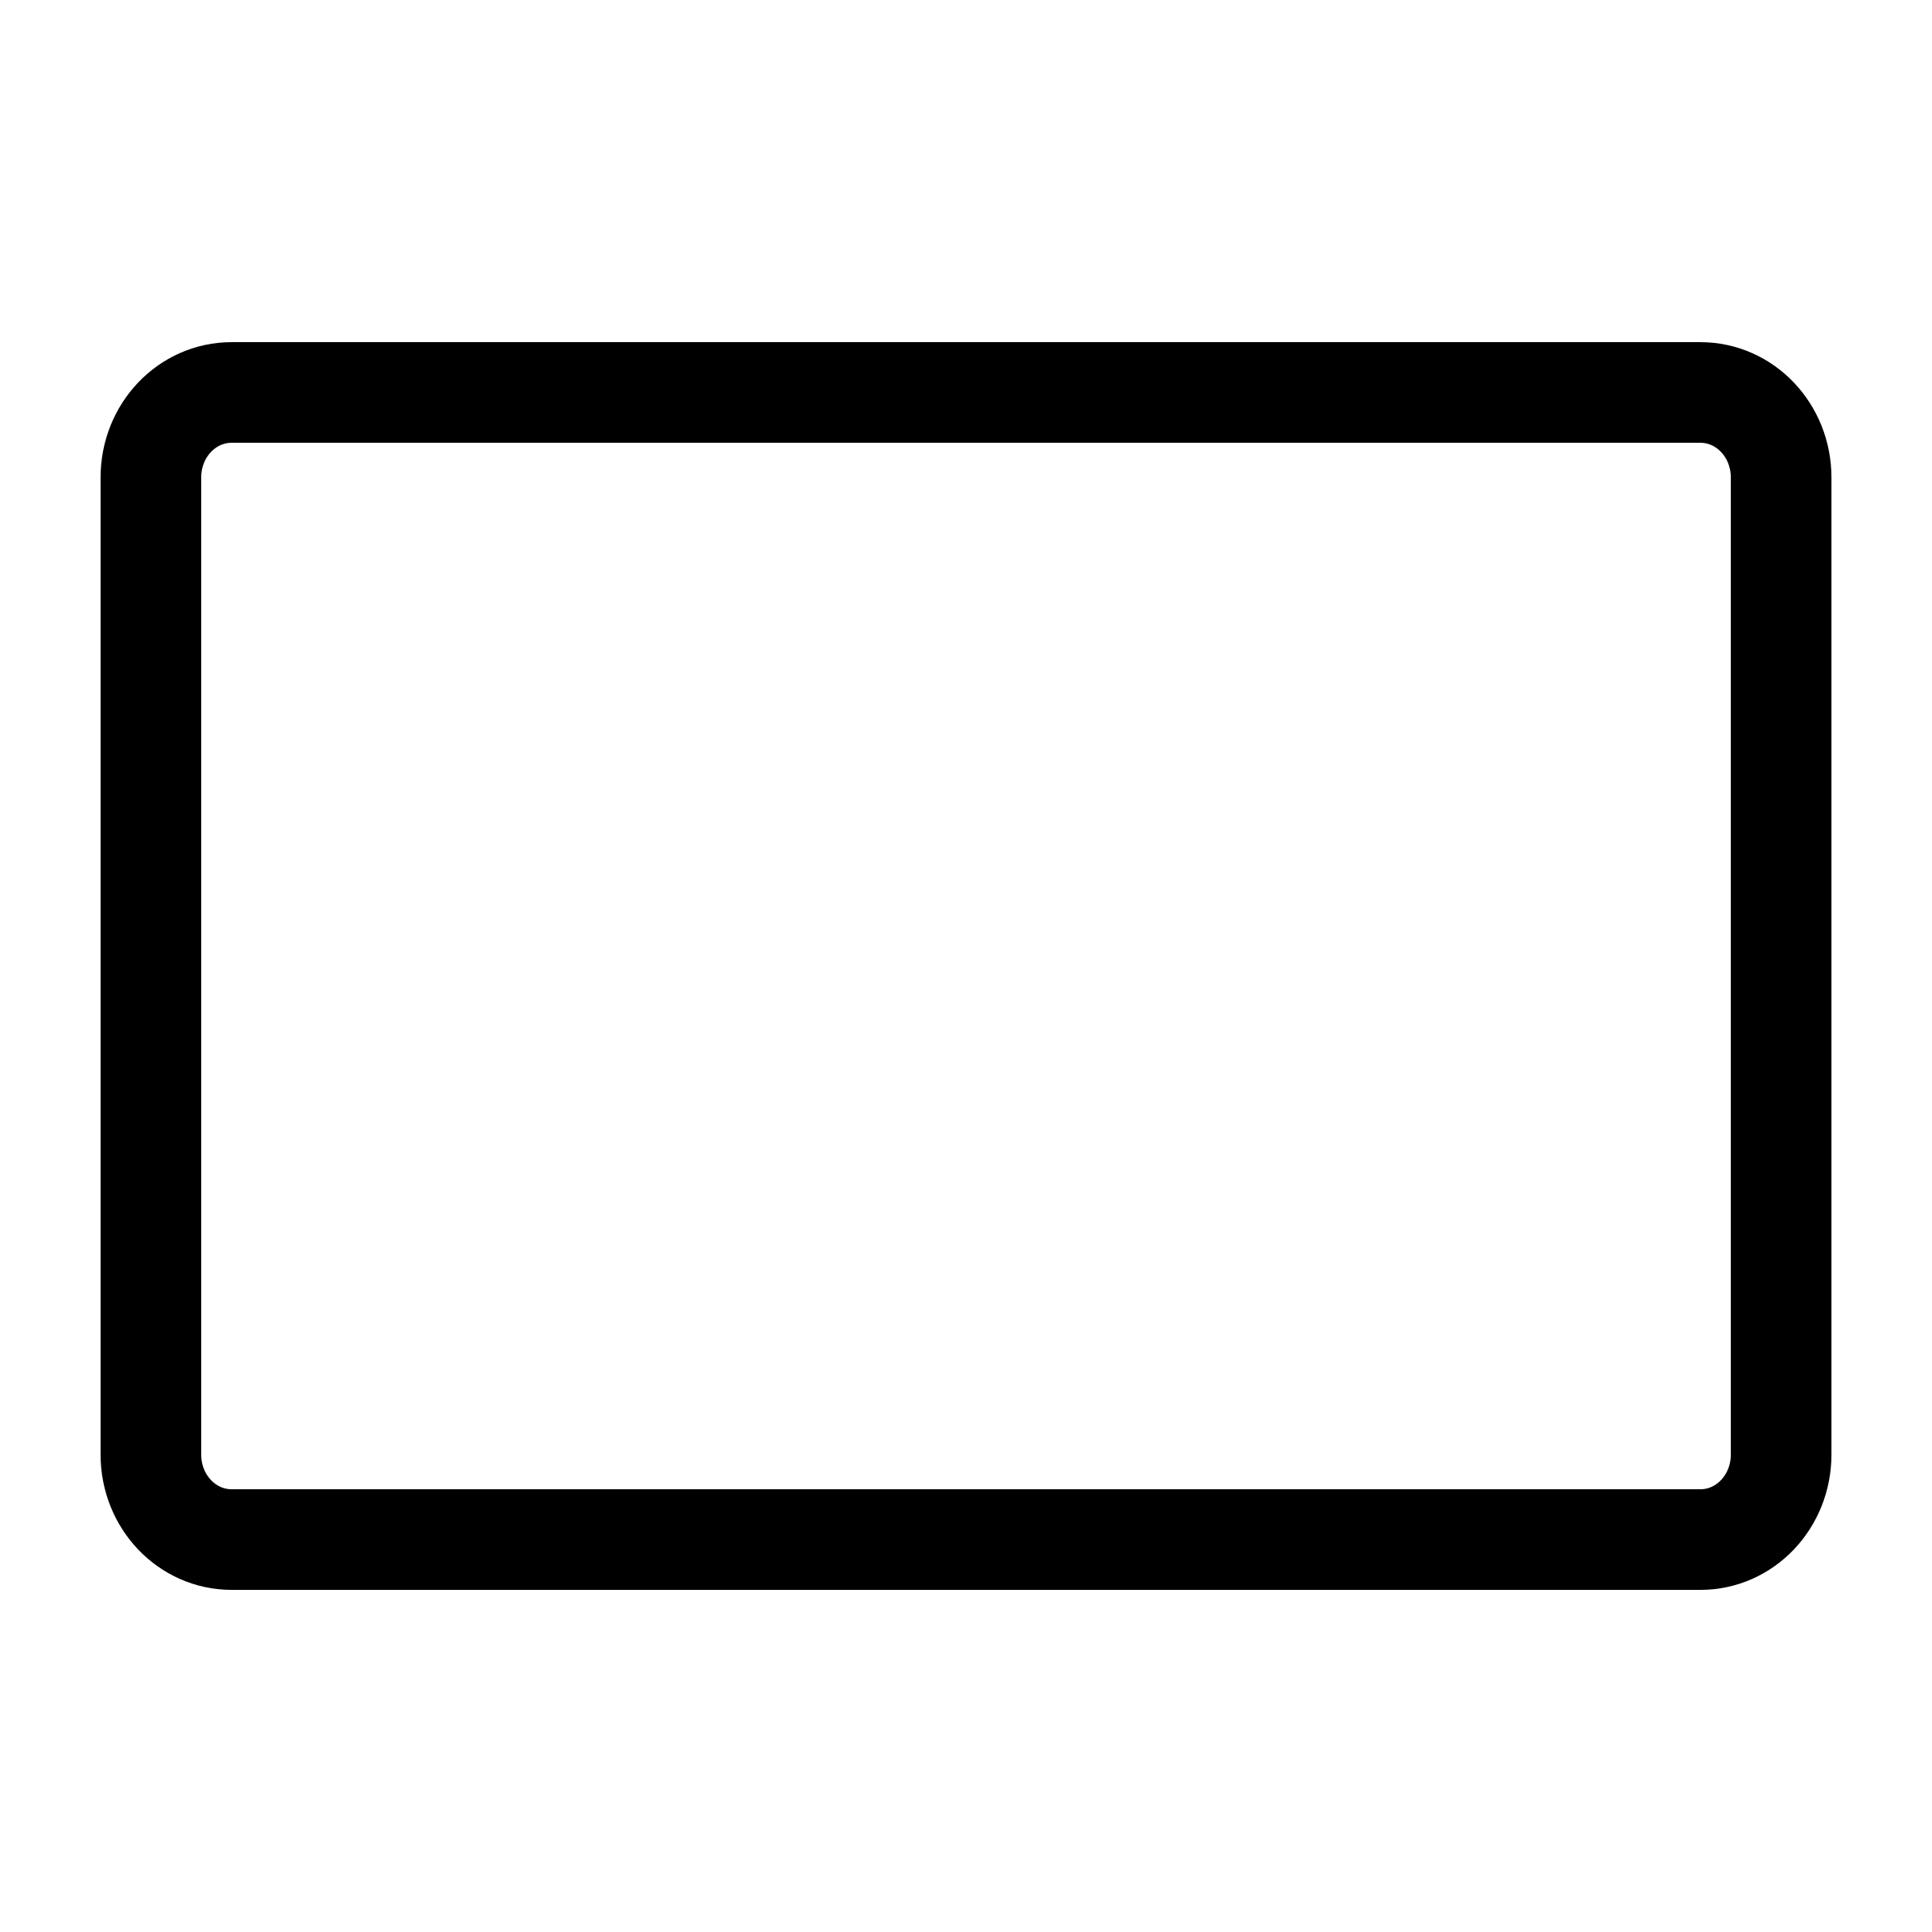 Black png frame. Primary icons free and